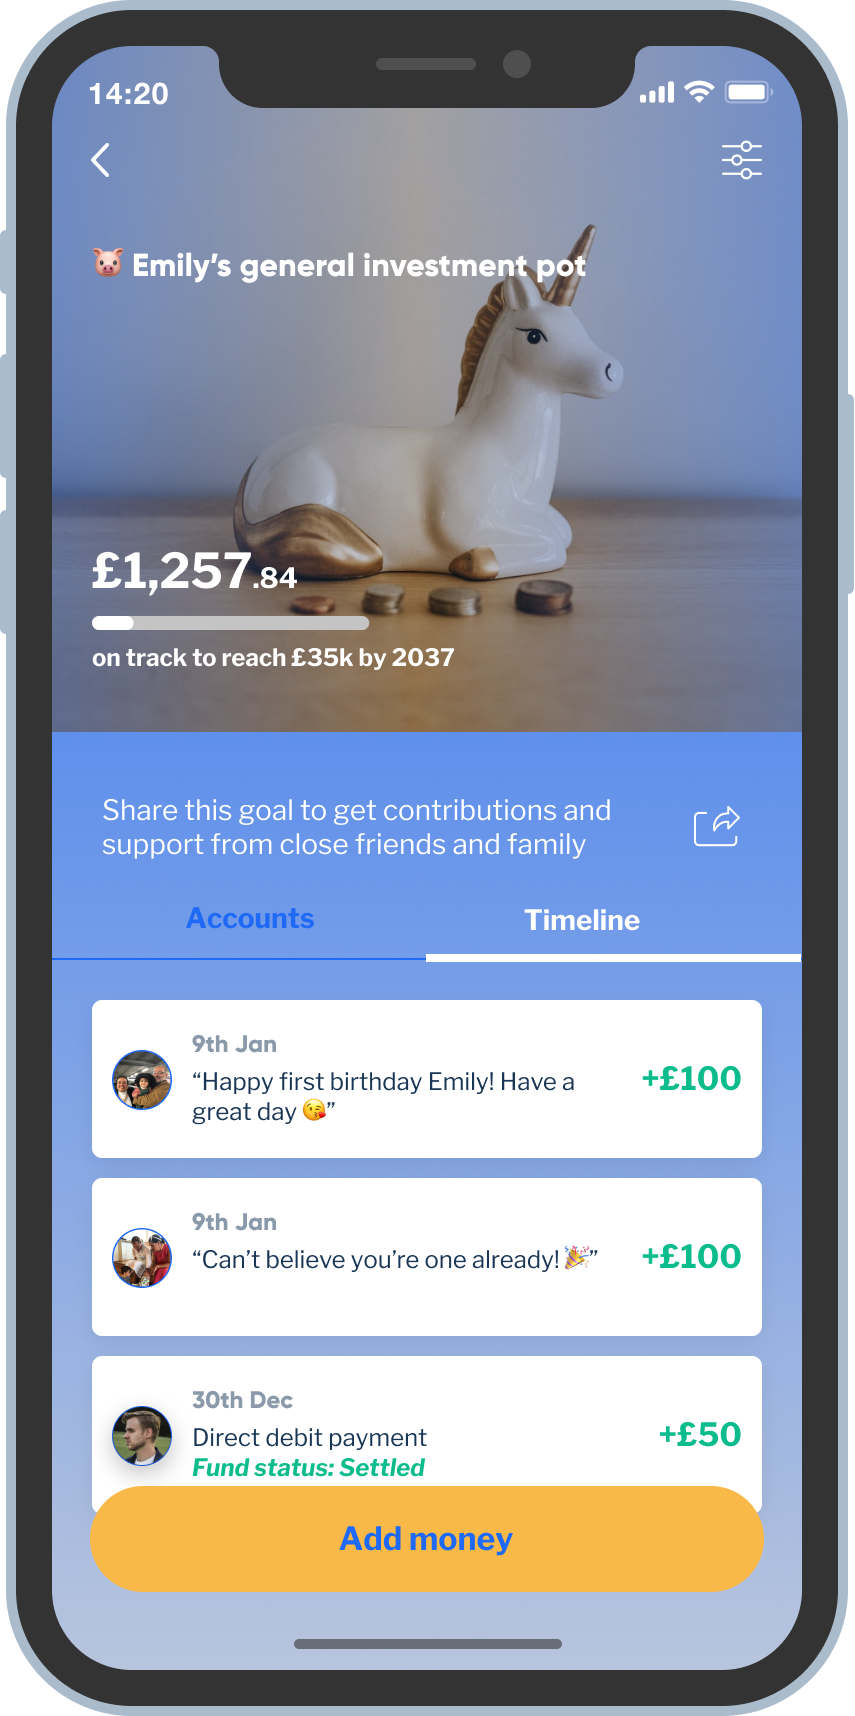 Mobile screenshot showing the messages and pictures that family and friends have left when contributing to the child's investment pot.